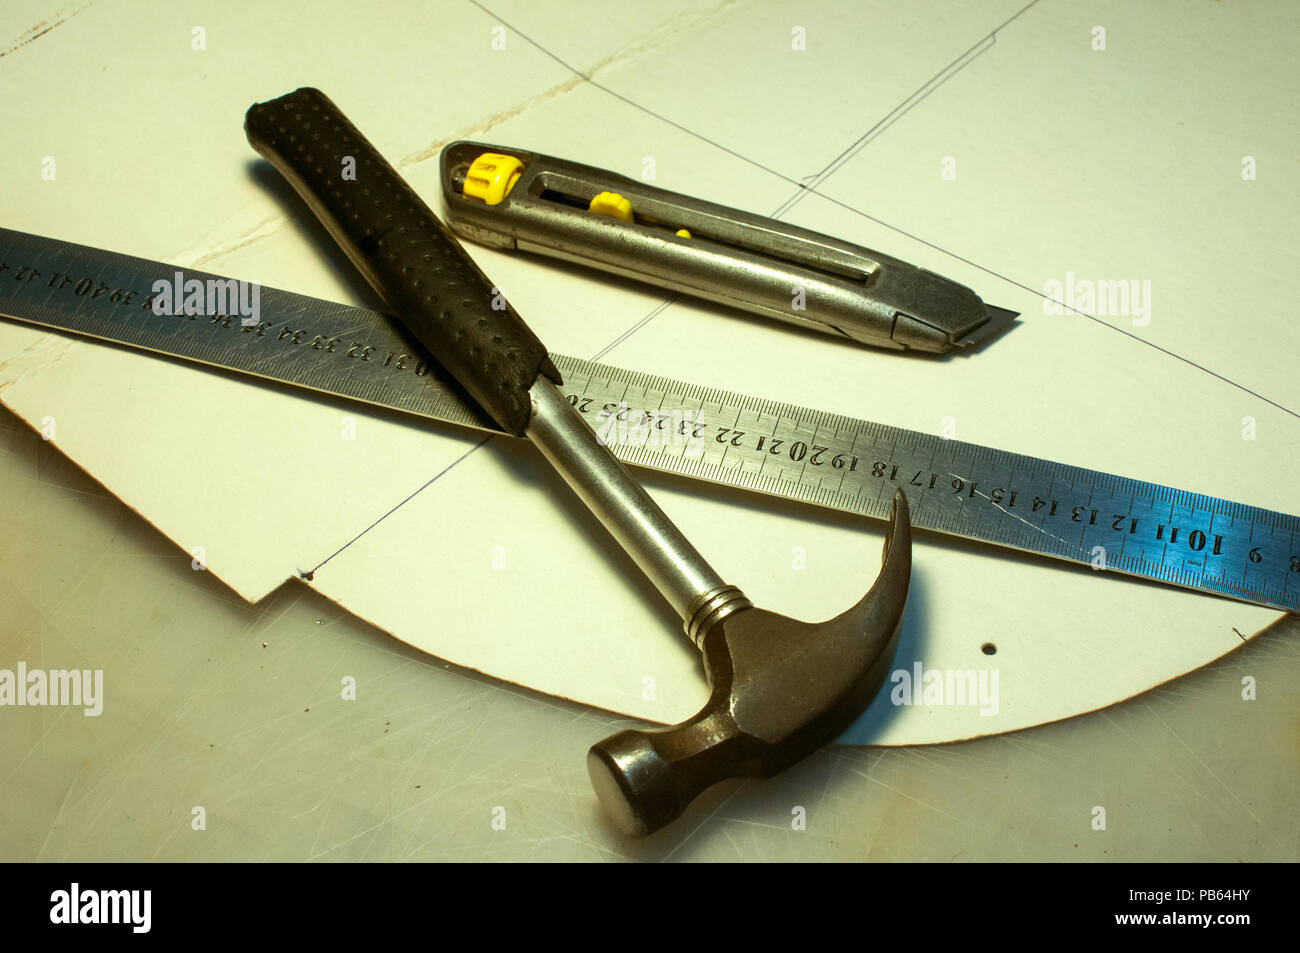 Hammer, metal ruler, cutter knife and cardboard cuts as tools in workshop production of leather goods Stock Photo